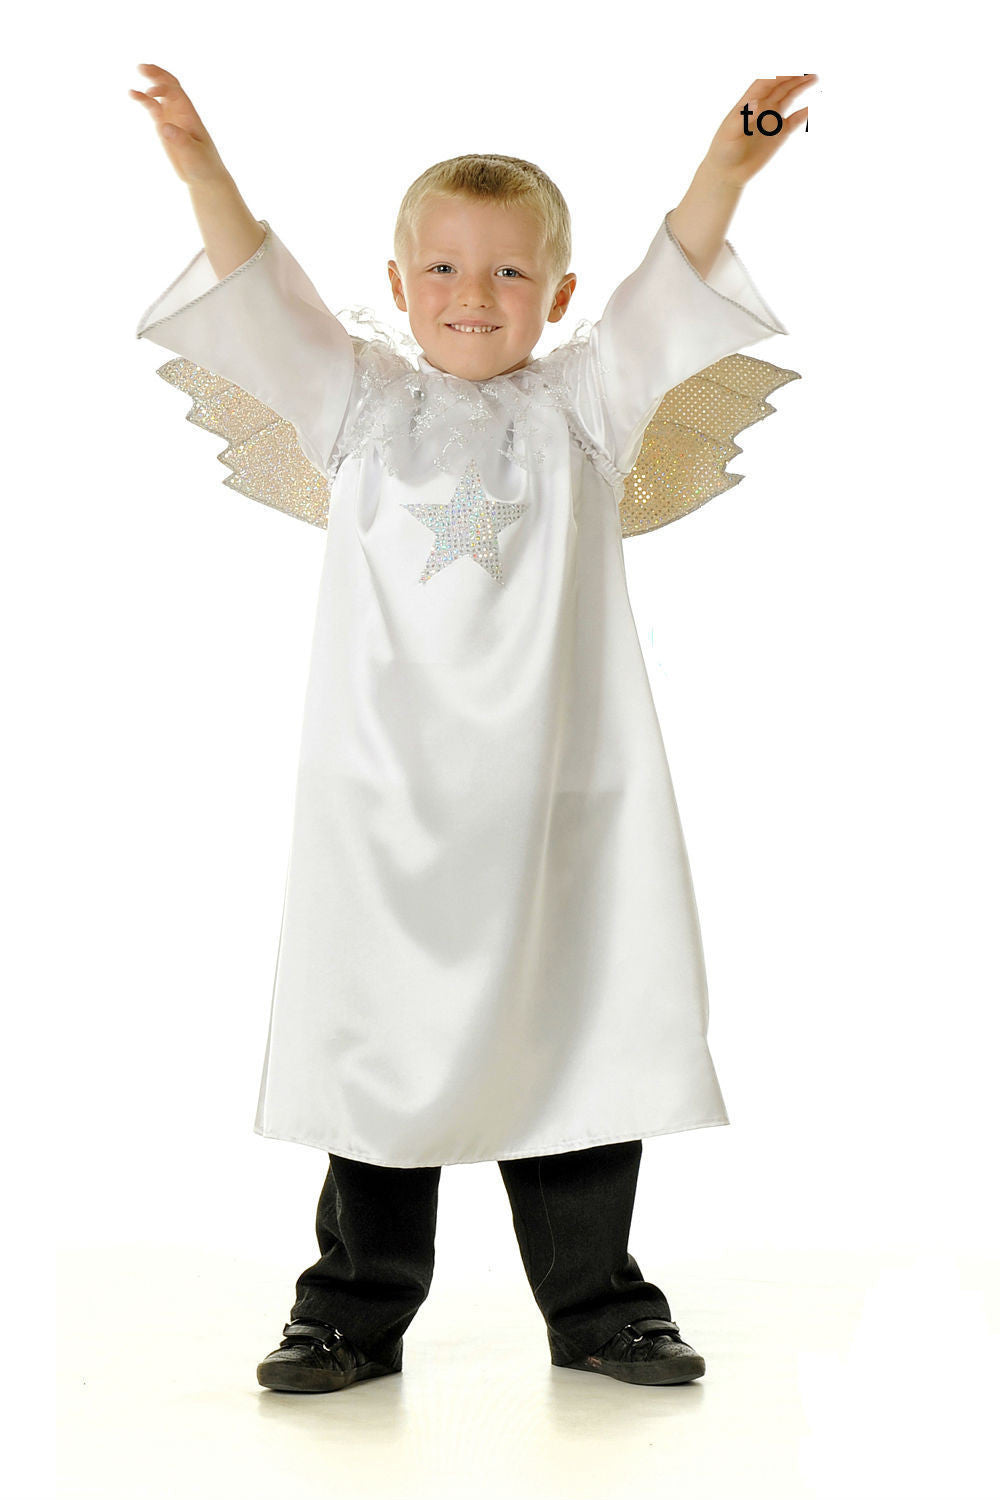 CHILDRENS NATIVITY ANGEL COSTUME